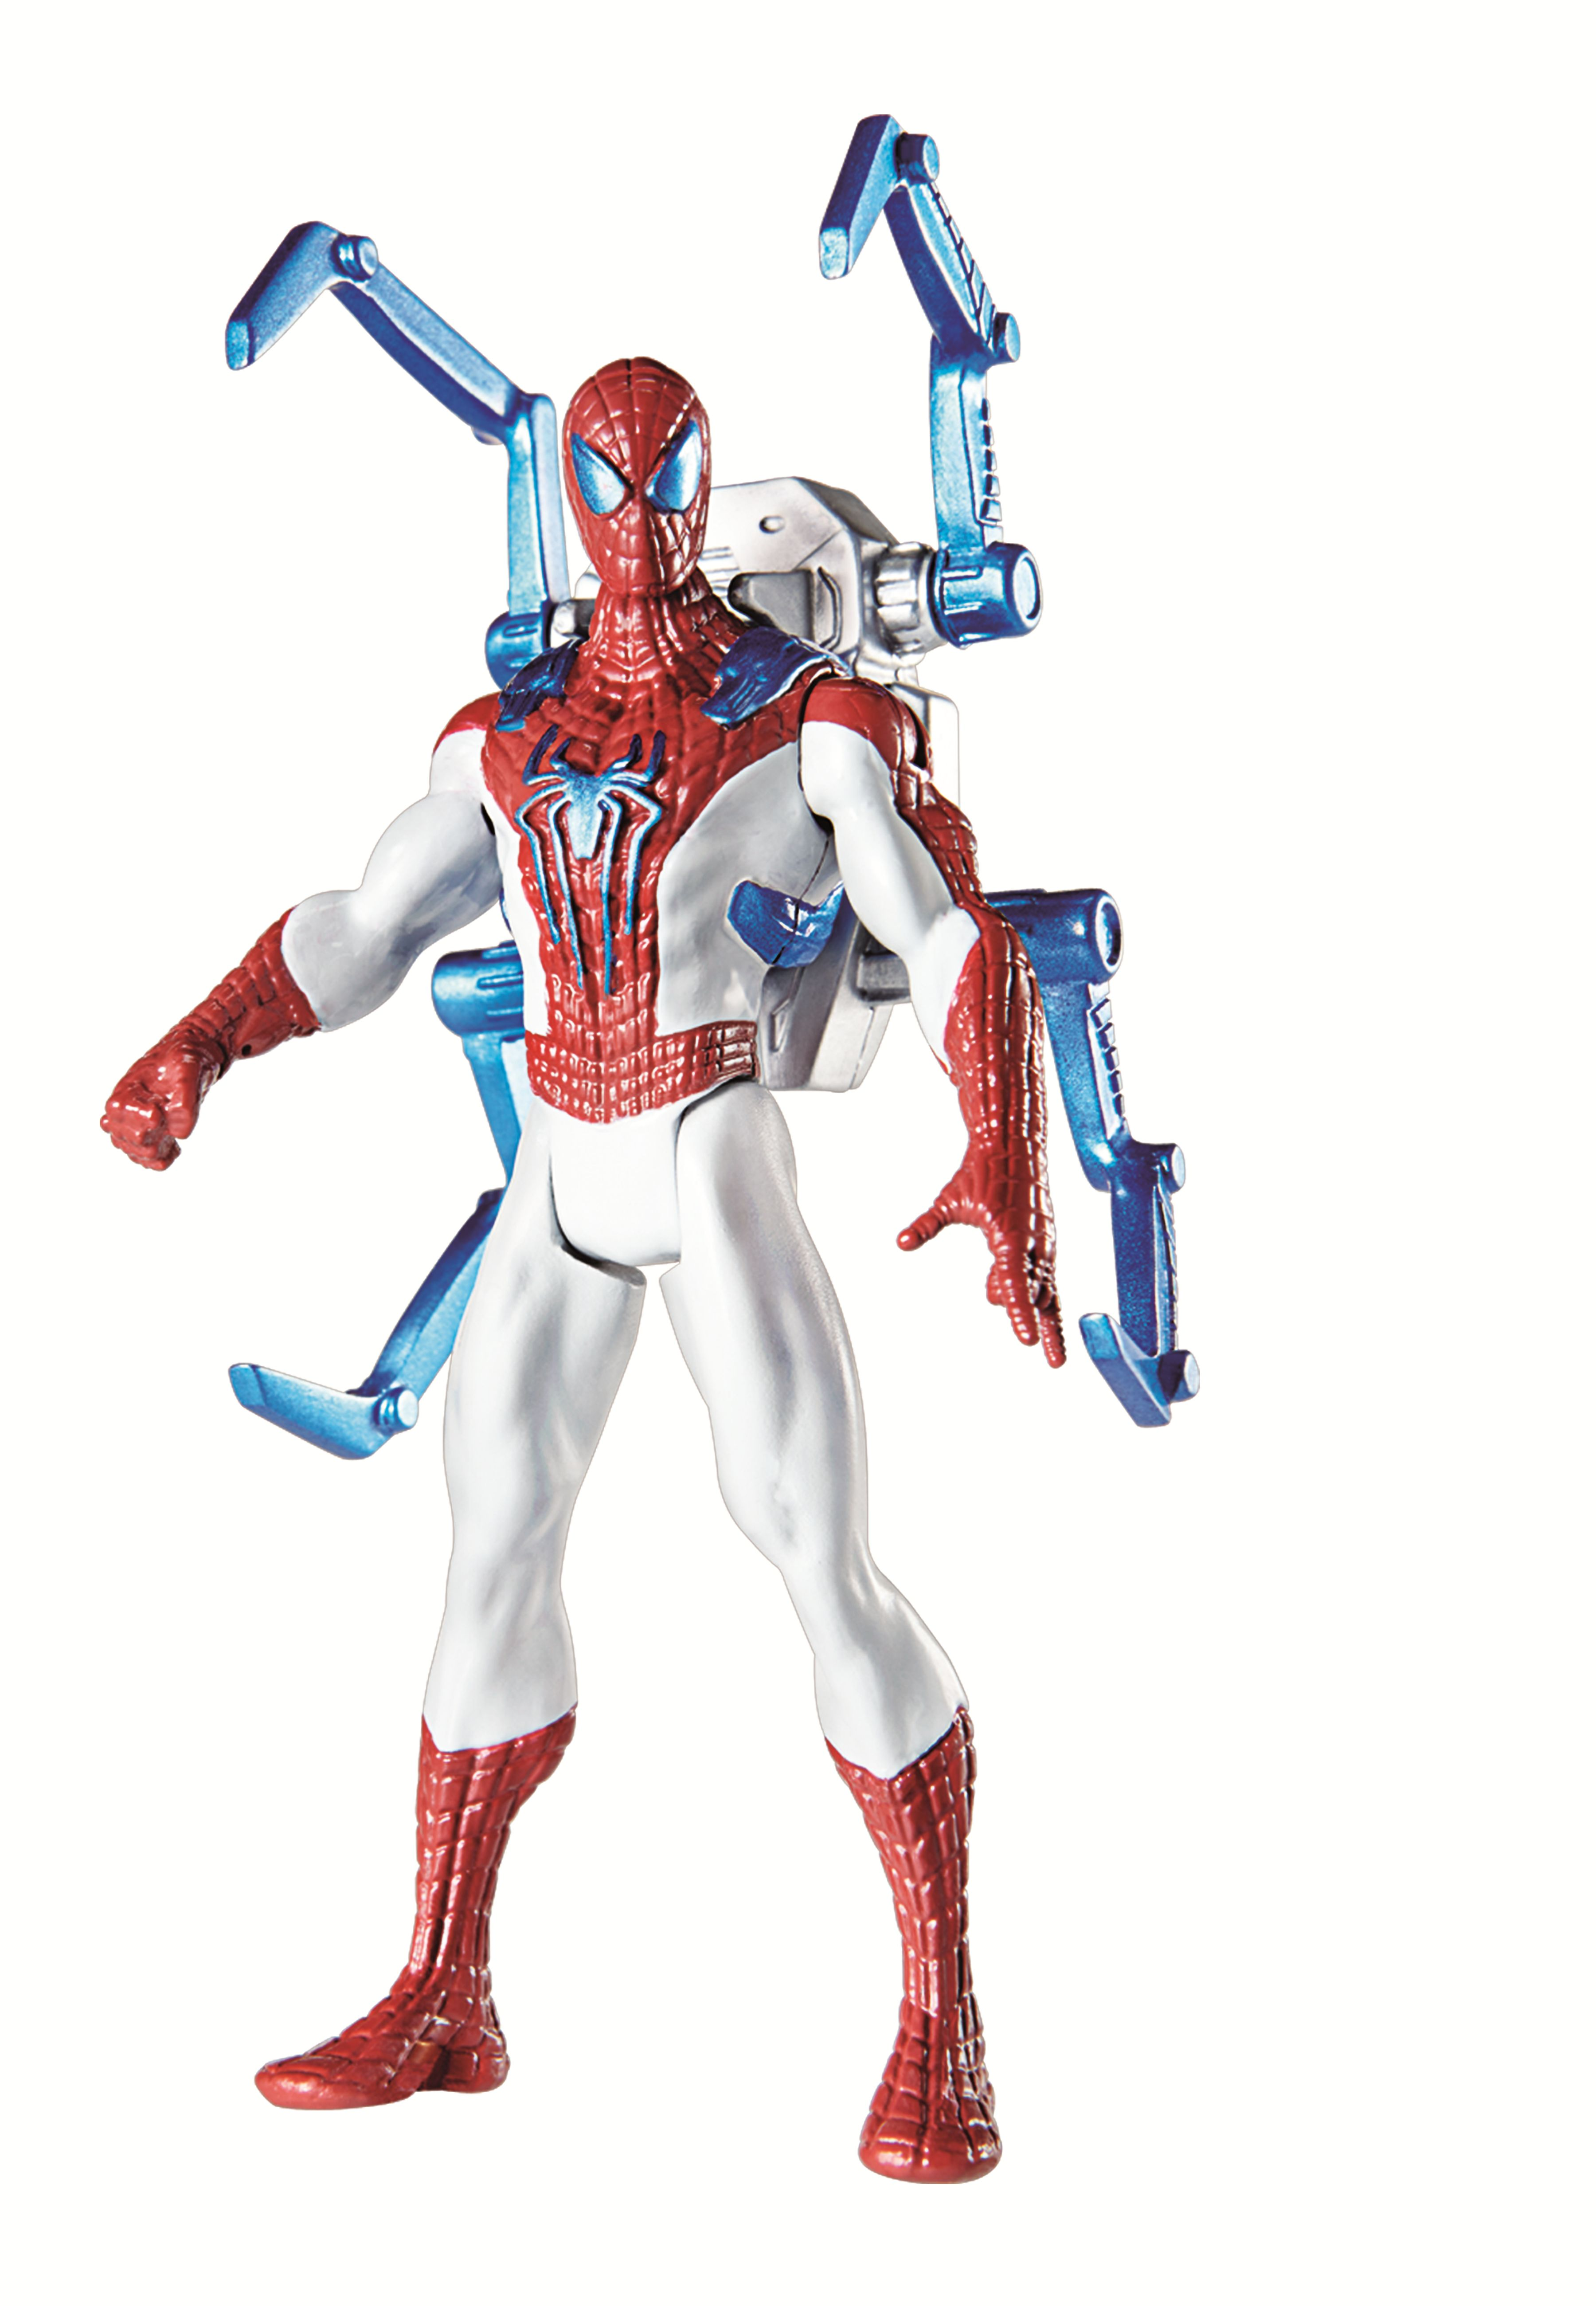 Spider Man Toys : Hasbro reveals amazing spider man toys graphic policy